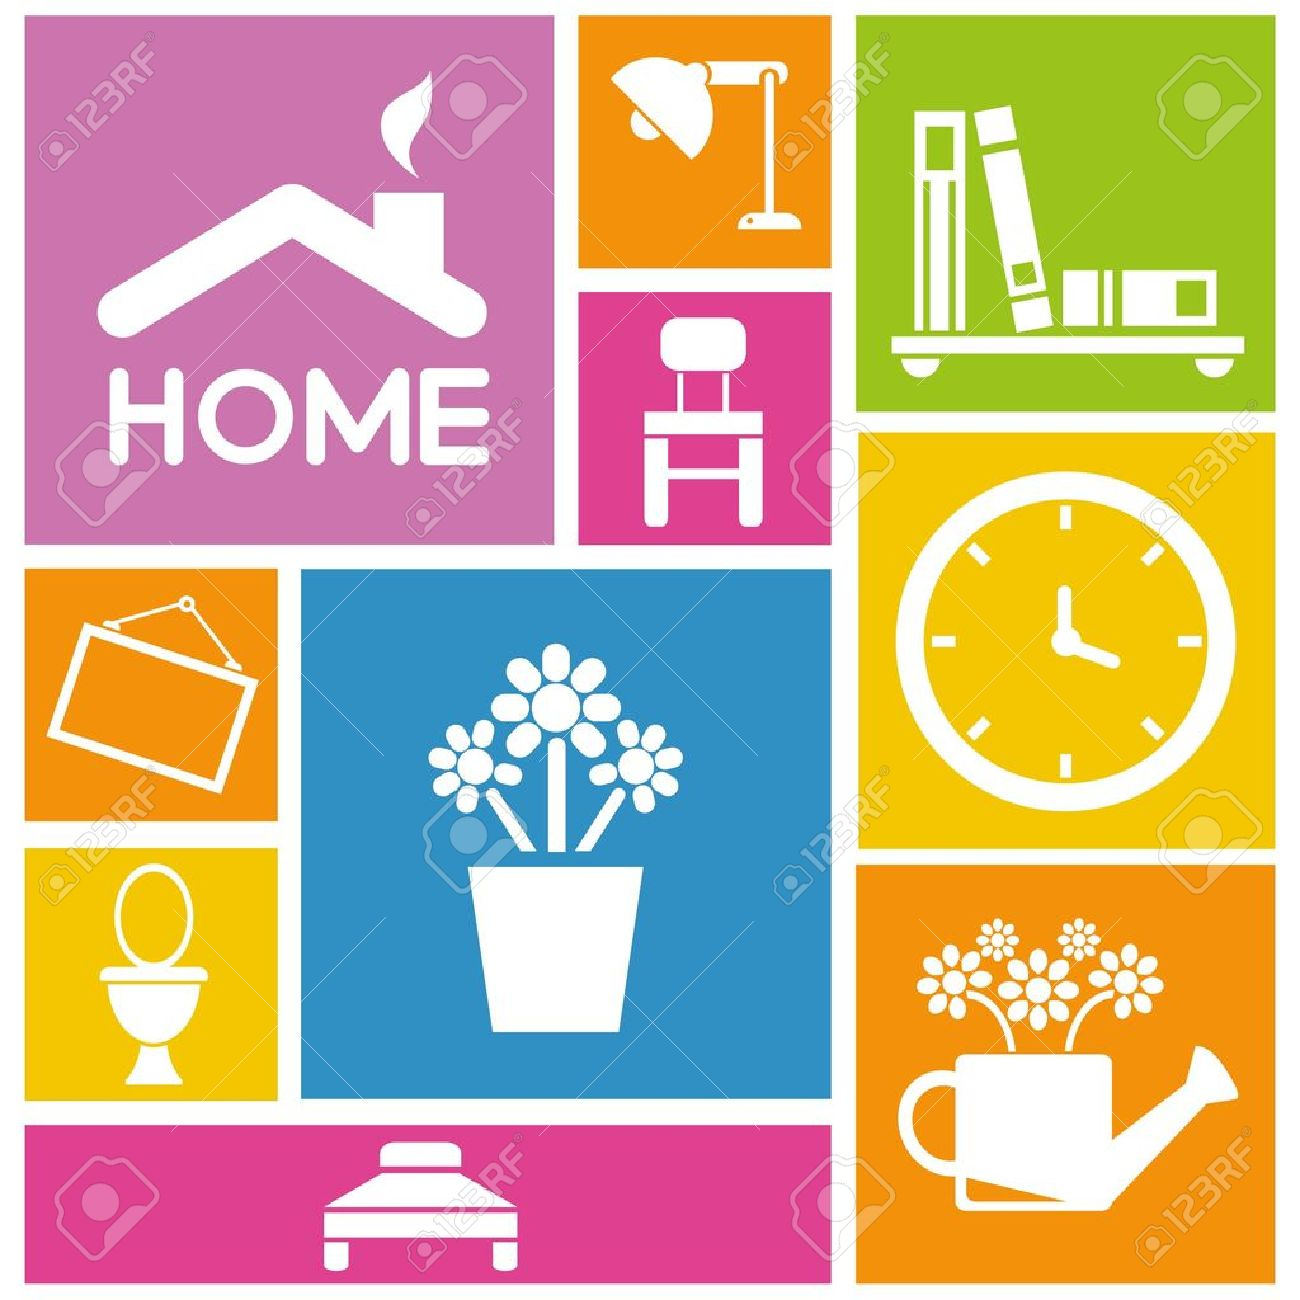 vector interior design and home design icons colorful background - Lifestyle Home Design